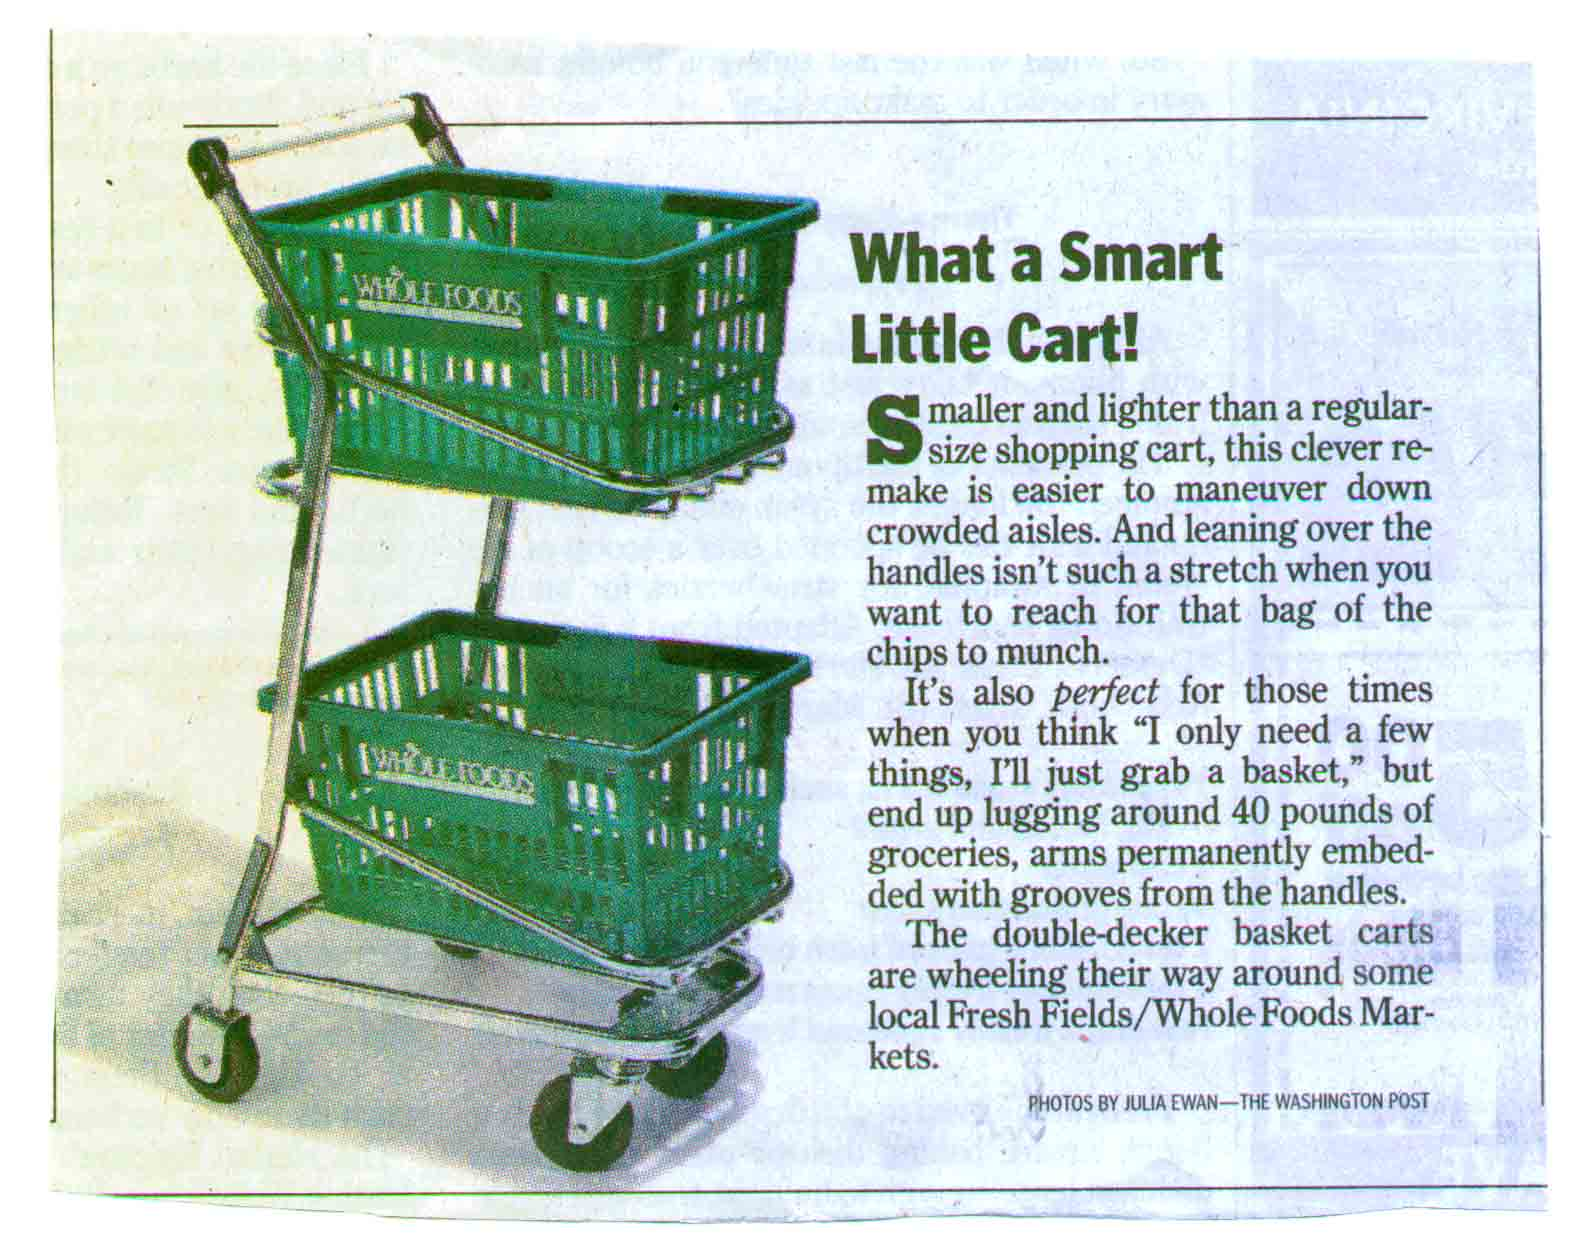 Smart Little Cart - EZcart Washington Post Article